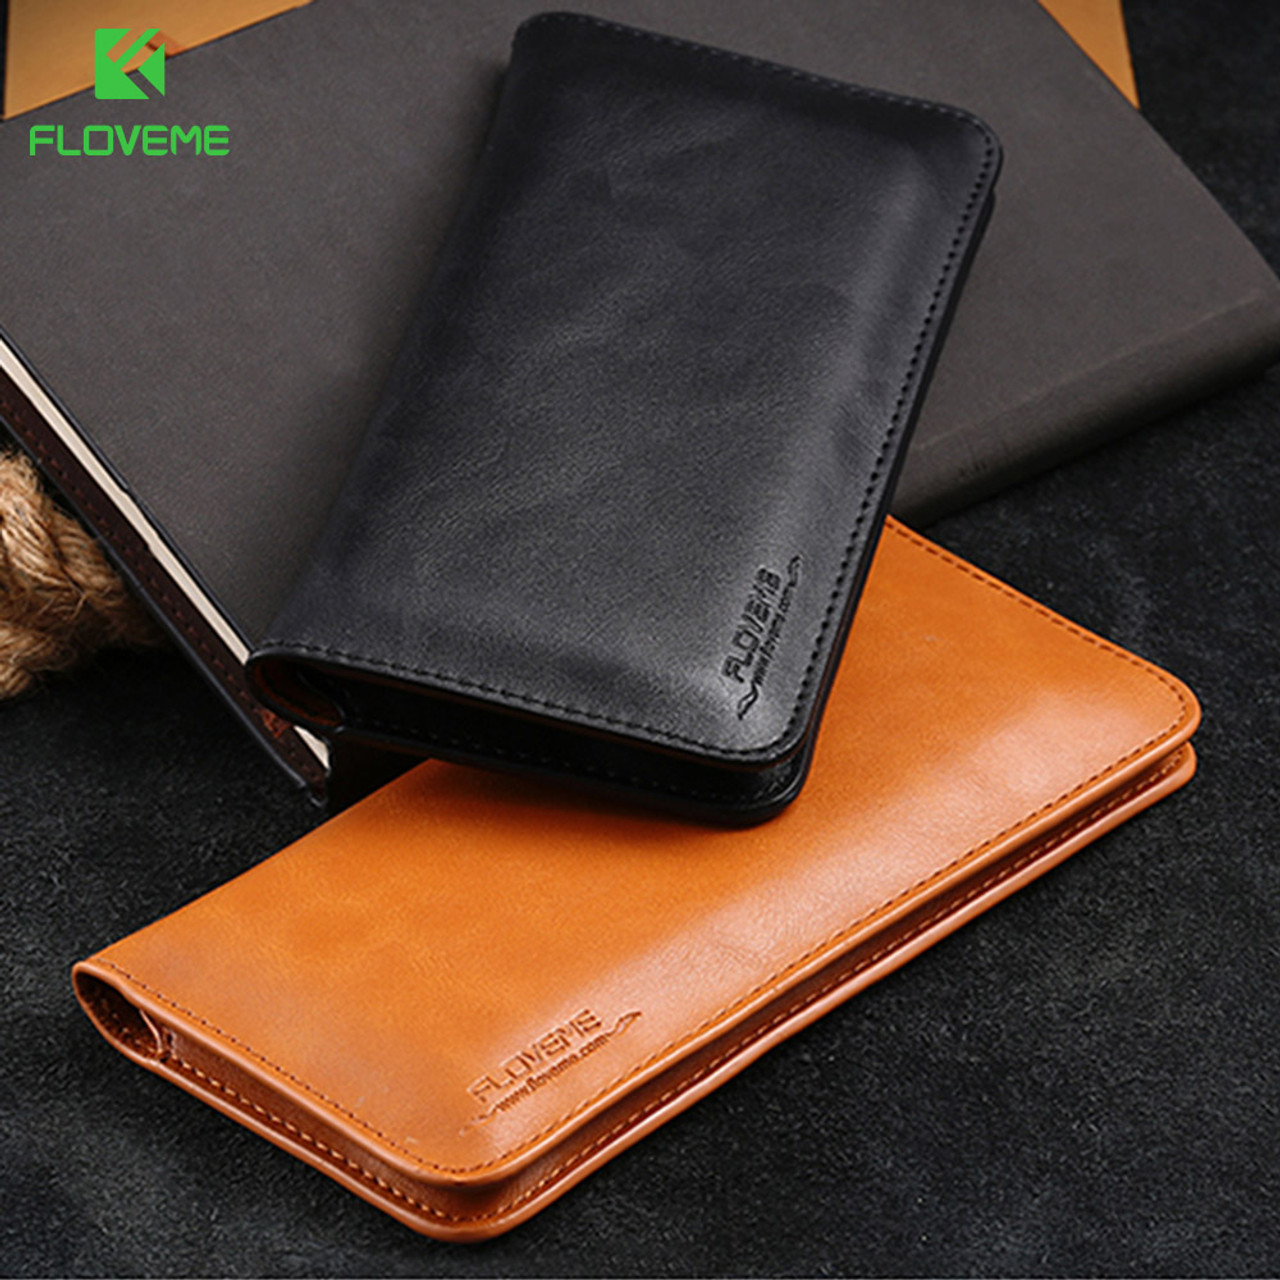 info for 016f0 cf489 FLOVEME Leather Wallet Case For Samsung Galaxy Note 8 S8 S8 Plus S7 S6 Edge  5.5 Inch Cases For iPhone X 8 7 6 6S Plus Phone Bags